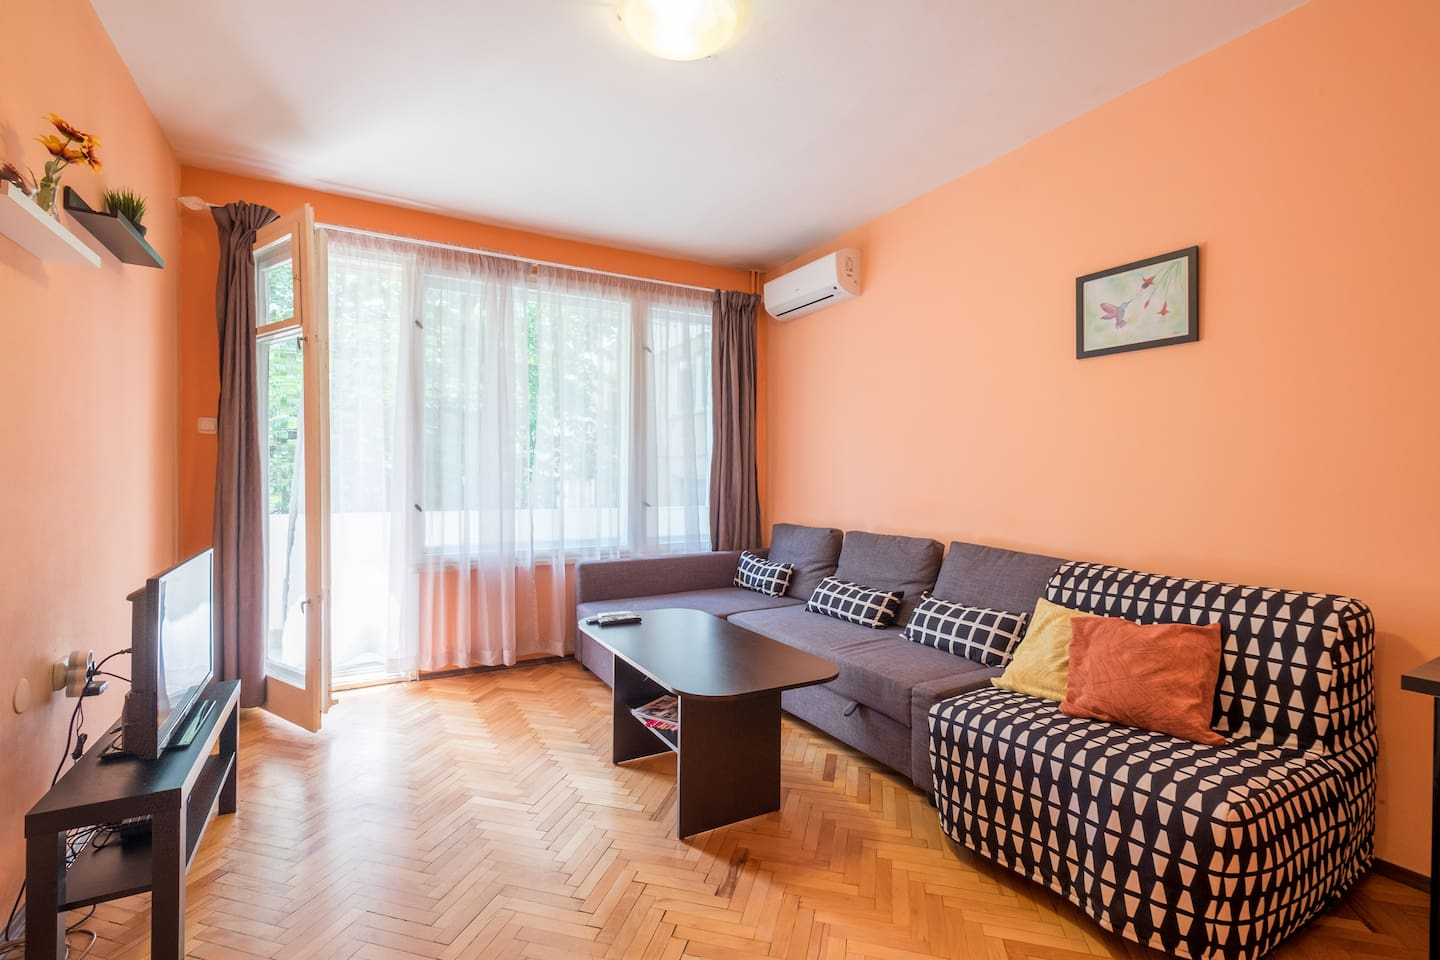 LIVING ROOM with A/C and expandable sofa to double bed as well as expandable single futon. Access to the balcony.